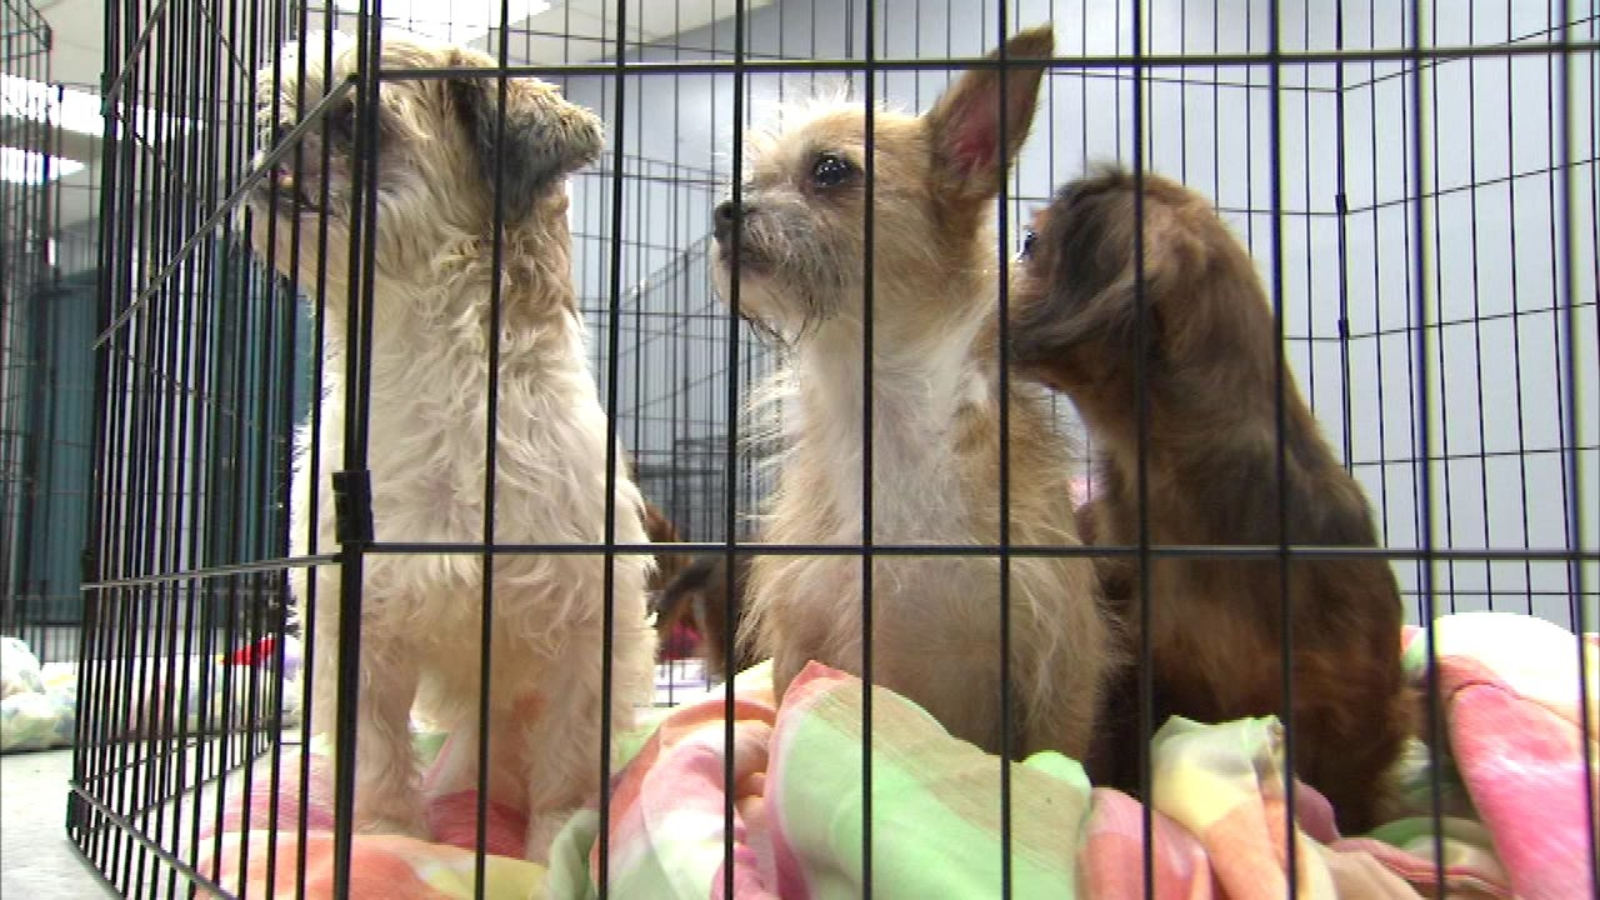 PHOTOS: Dogs rescued from 'house of horrors' ready for